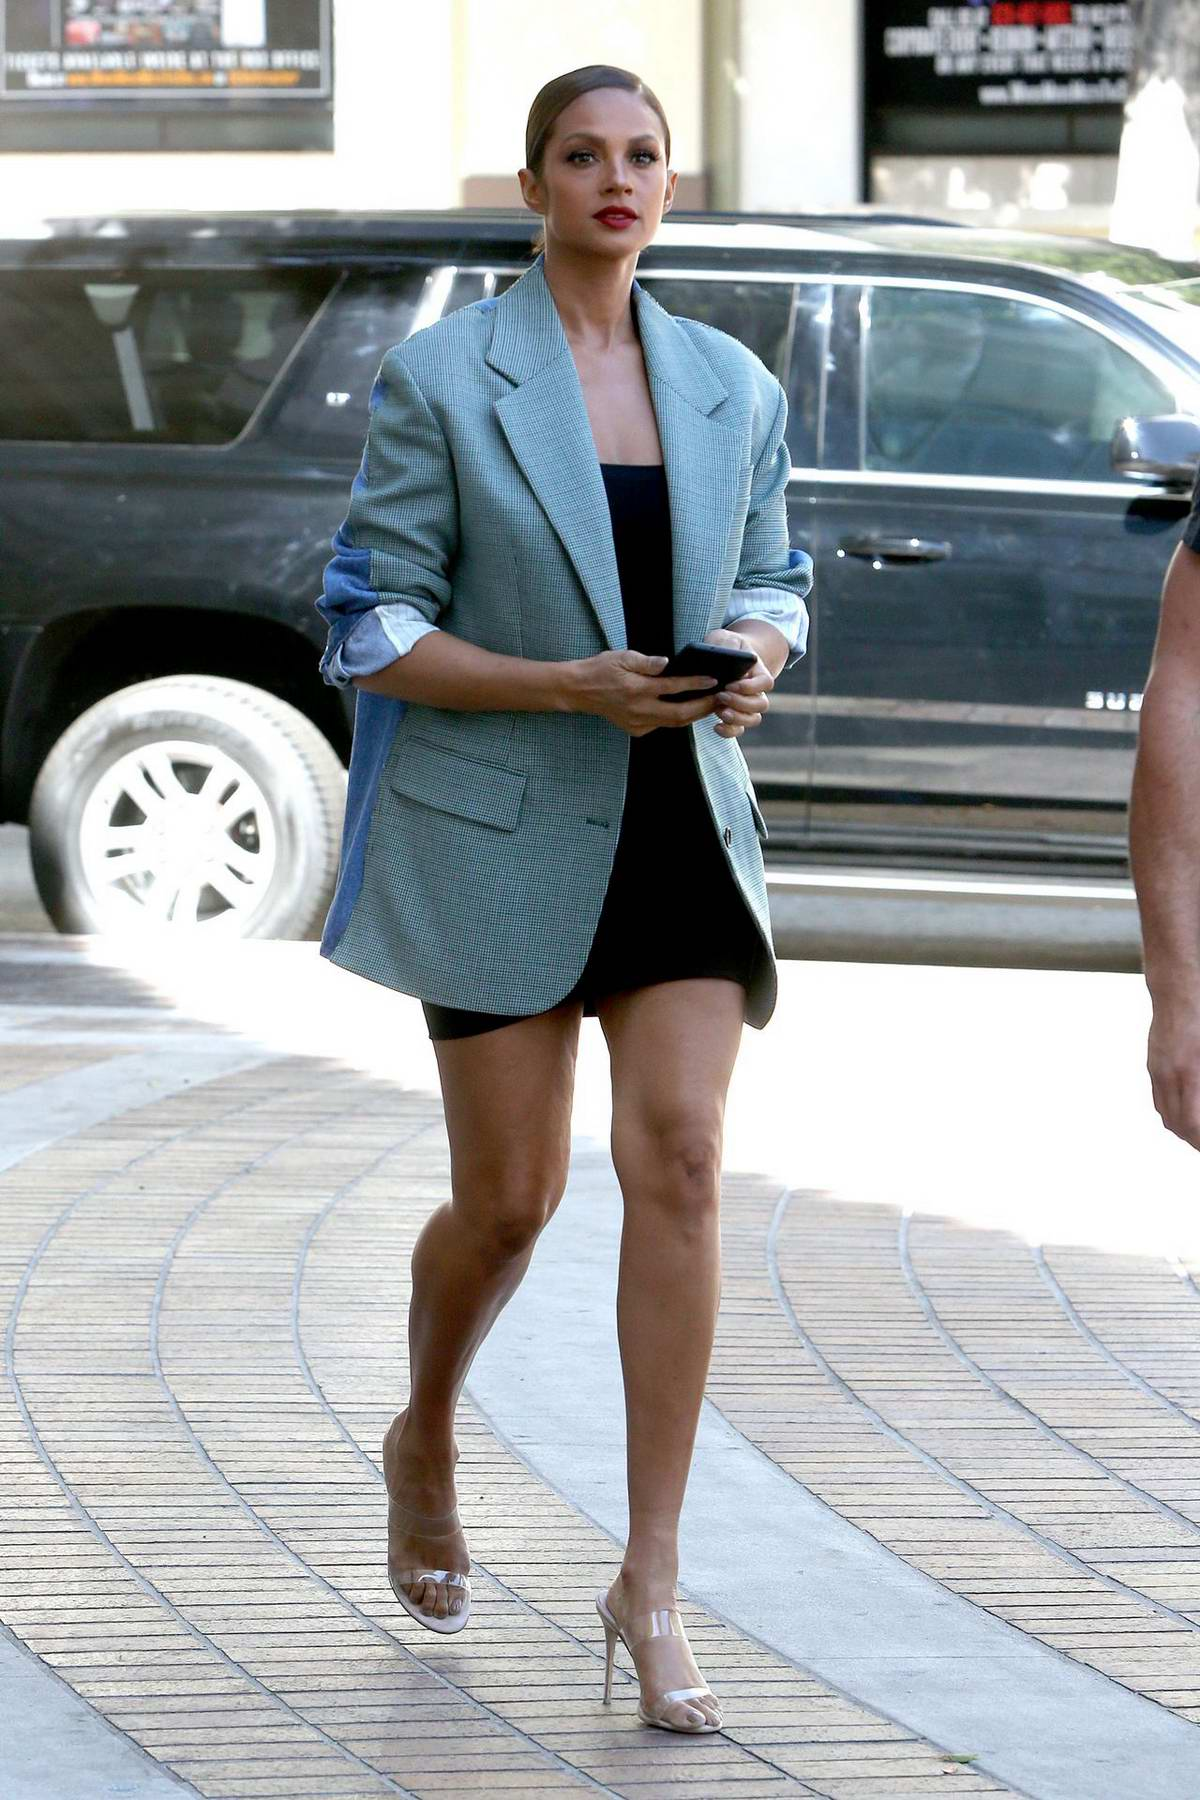 Alesha Dixon shows off her long legs as she arrives at America's Got Talent in Pasadena, California